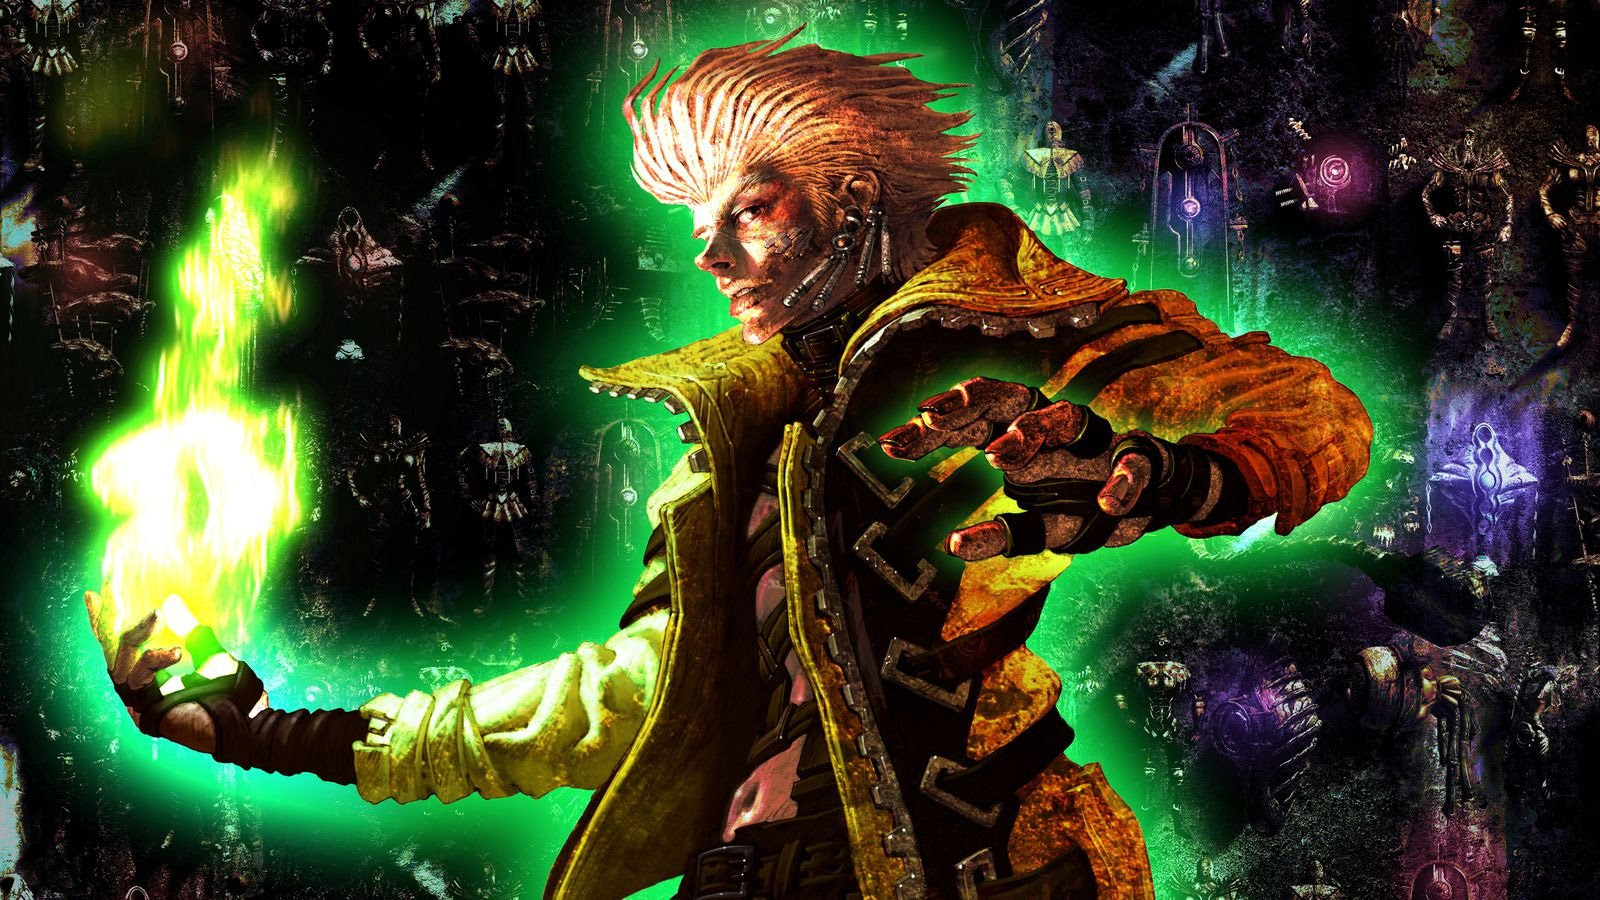 Over a million people played Phantom Dust and Microsoft is happy with that screenshot